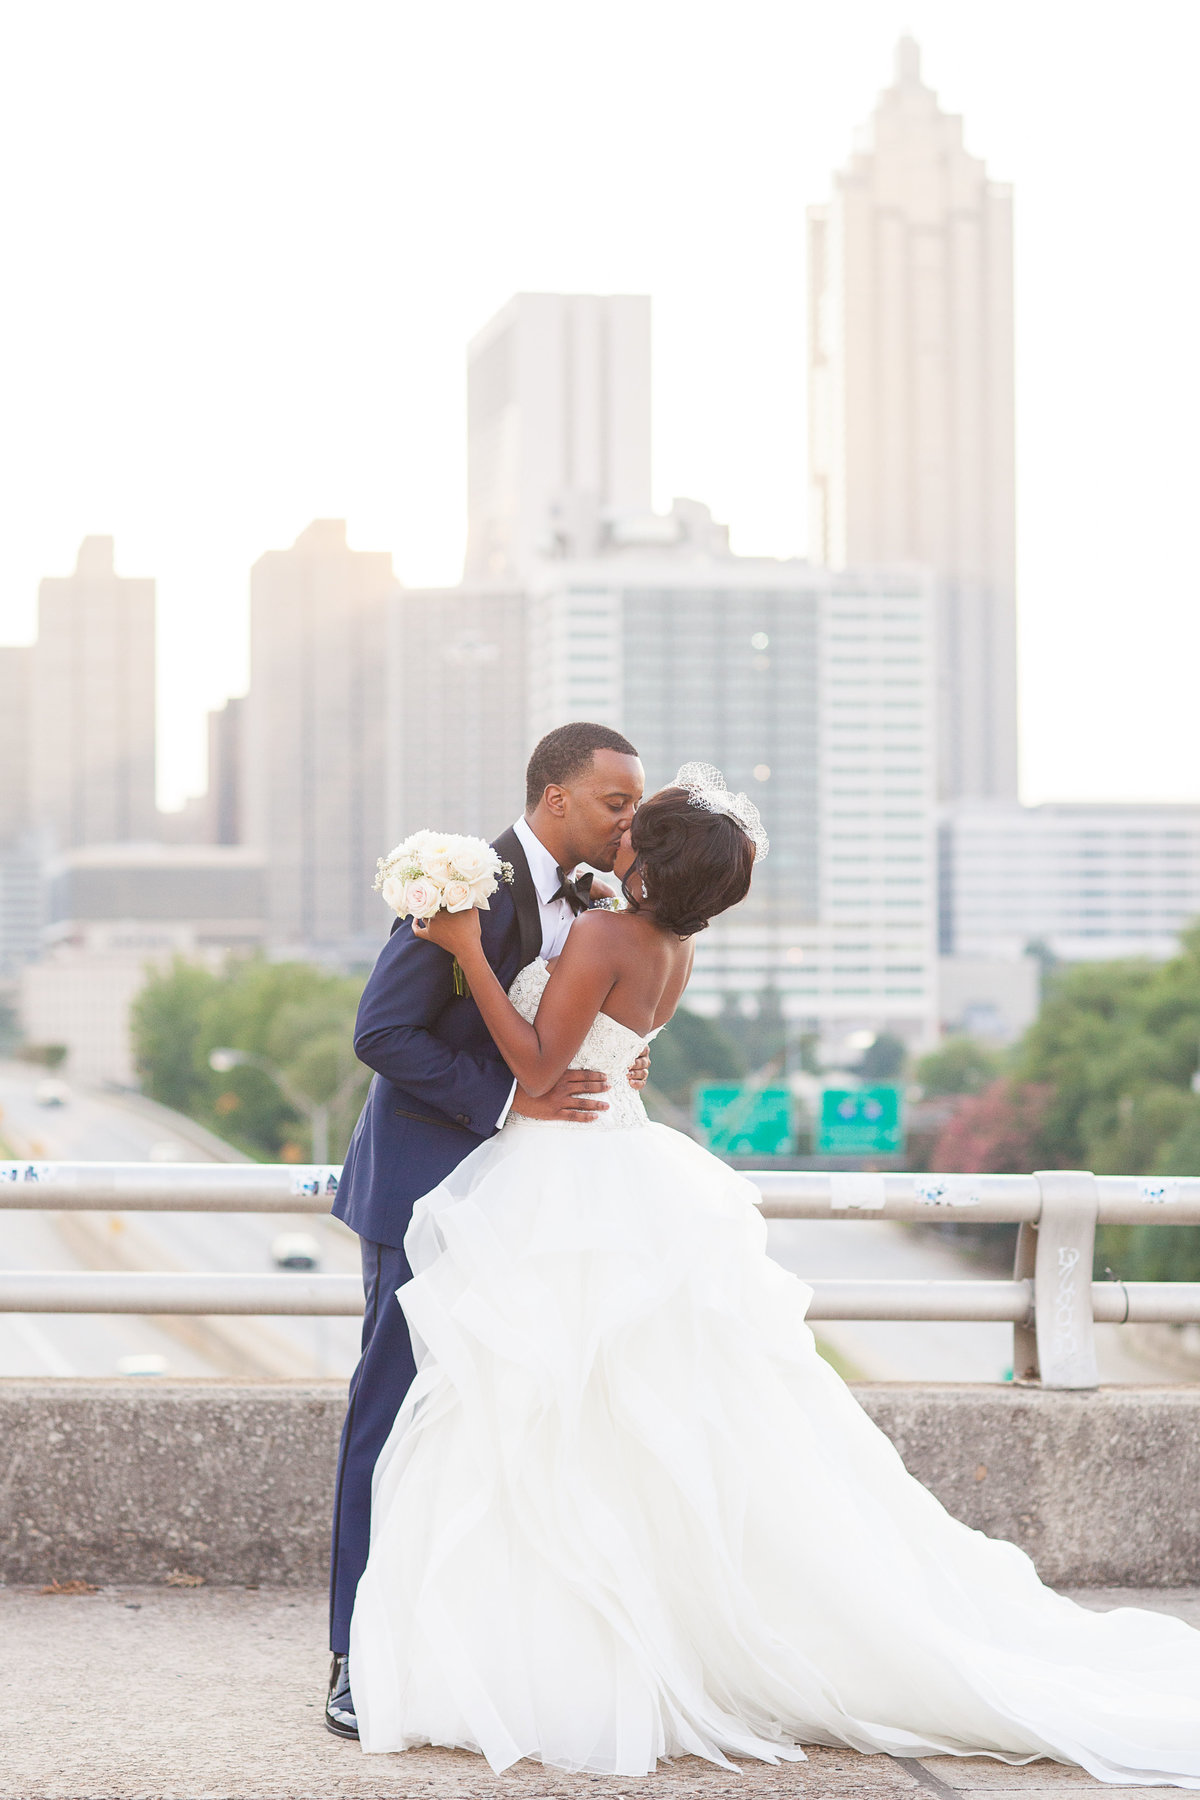 A bride and groom on the Jackson Street Bridge in Atlanta